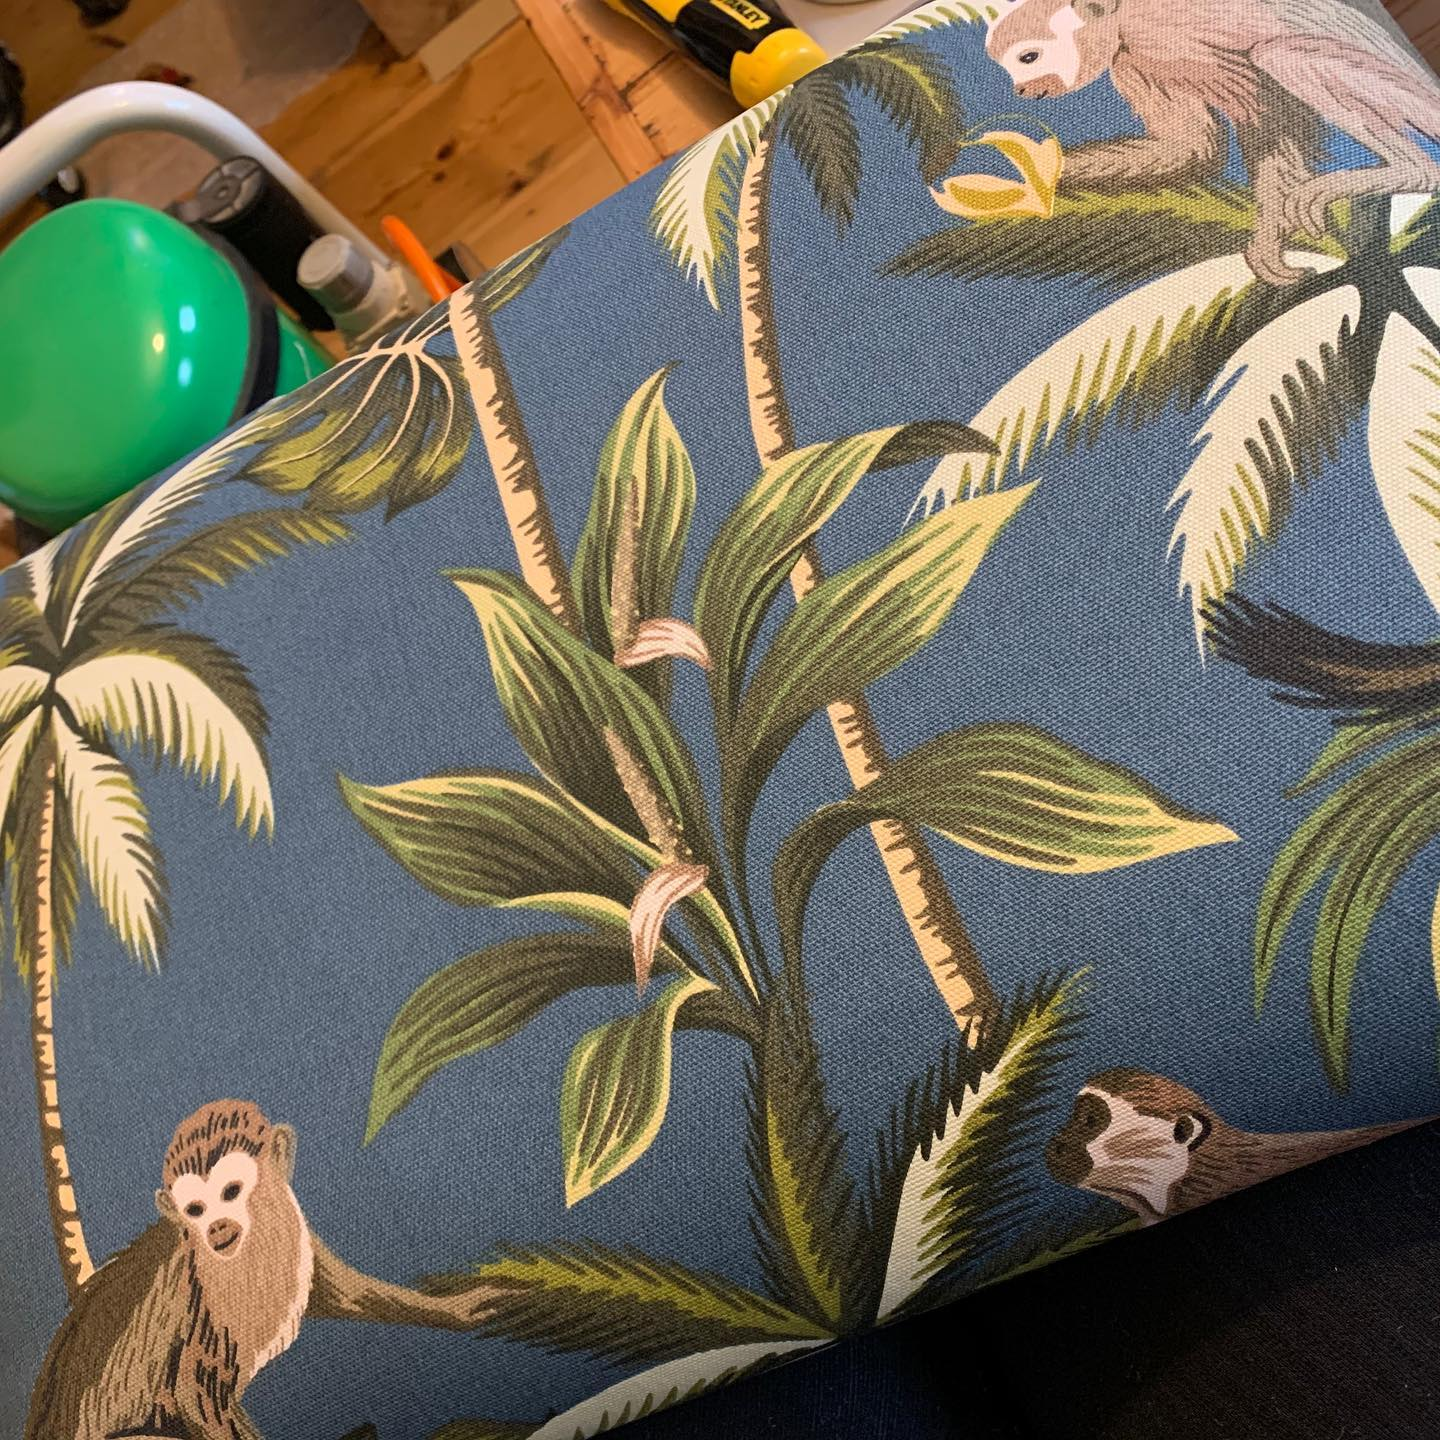 New fabric!   Hoping to share the finished product with you tomorrow. ...#upholstery #quirky #beautifulfabric #print #monkey #animallover #footstool #ottoman #handcrafted #homedecor #livingroom